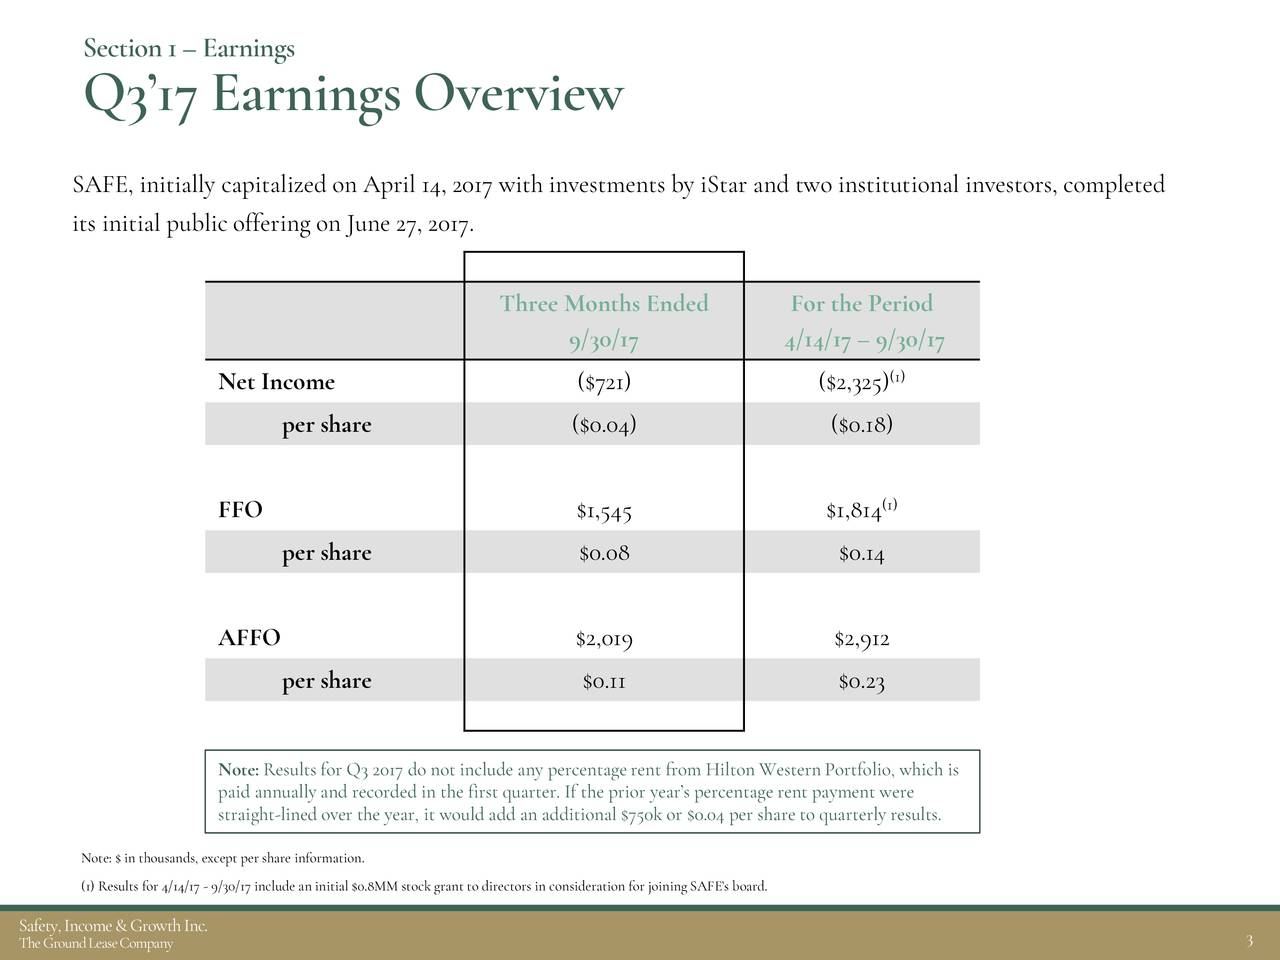 Safety income & growth inc ipo